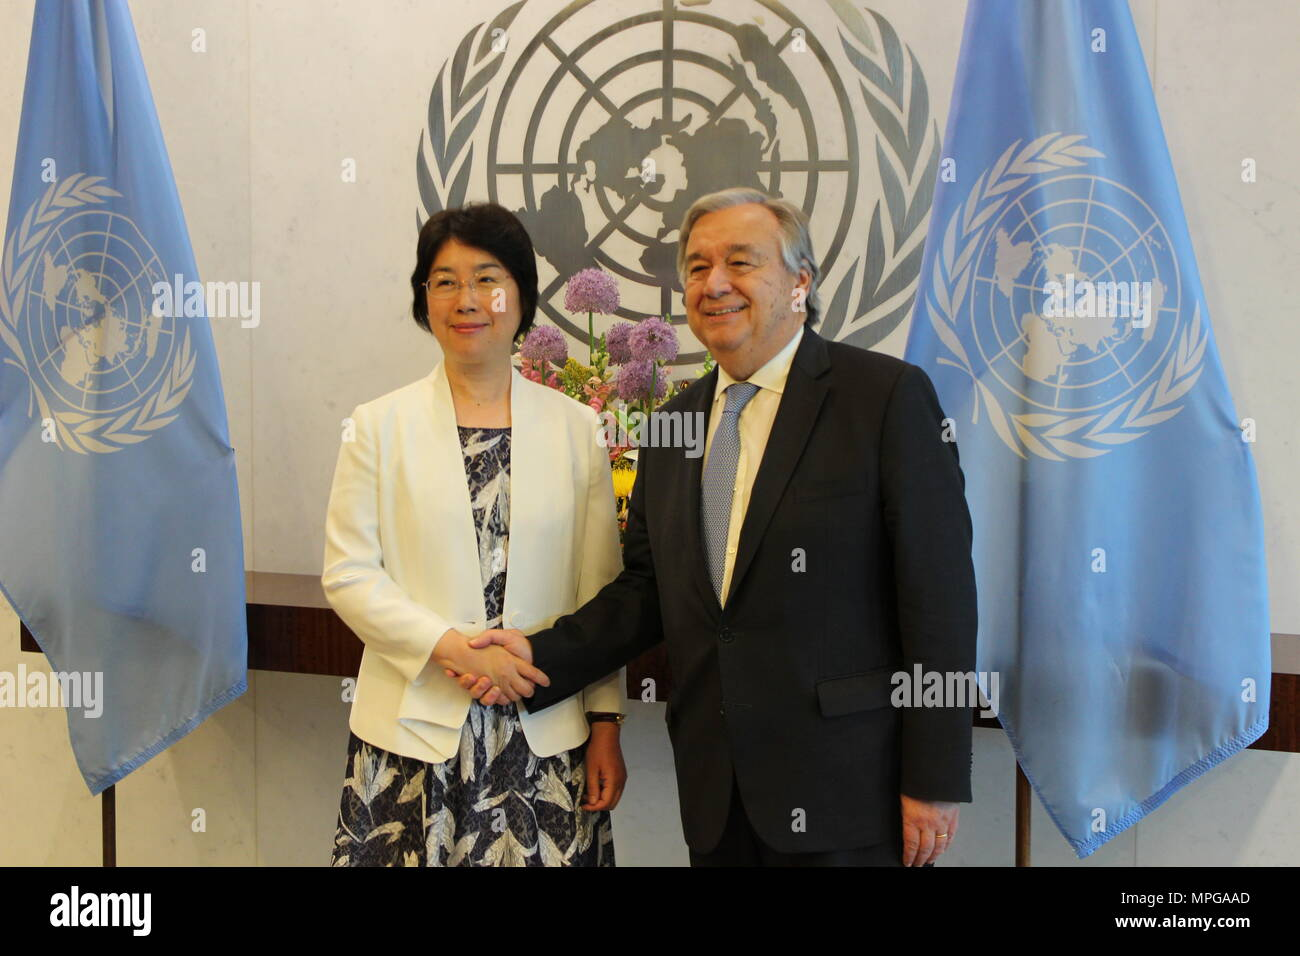 UN, New York, USA. 23rd May, 2018. UN Sec-Gen Antonio Guterres met Zou Jiayi, China's Commissioner of the National Supervisory Commission. Photo: Matthew Russell Lee / Inner City Press Credit: Matthew Russell Lee/Alamy Live News Stock Photo